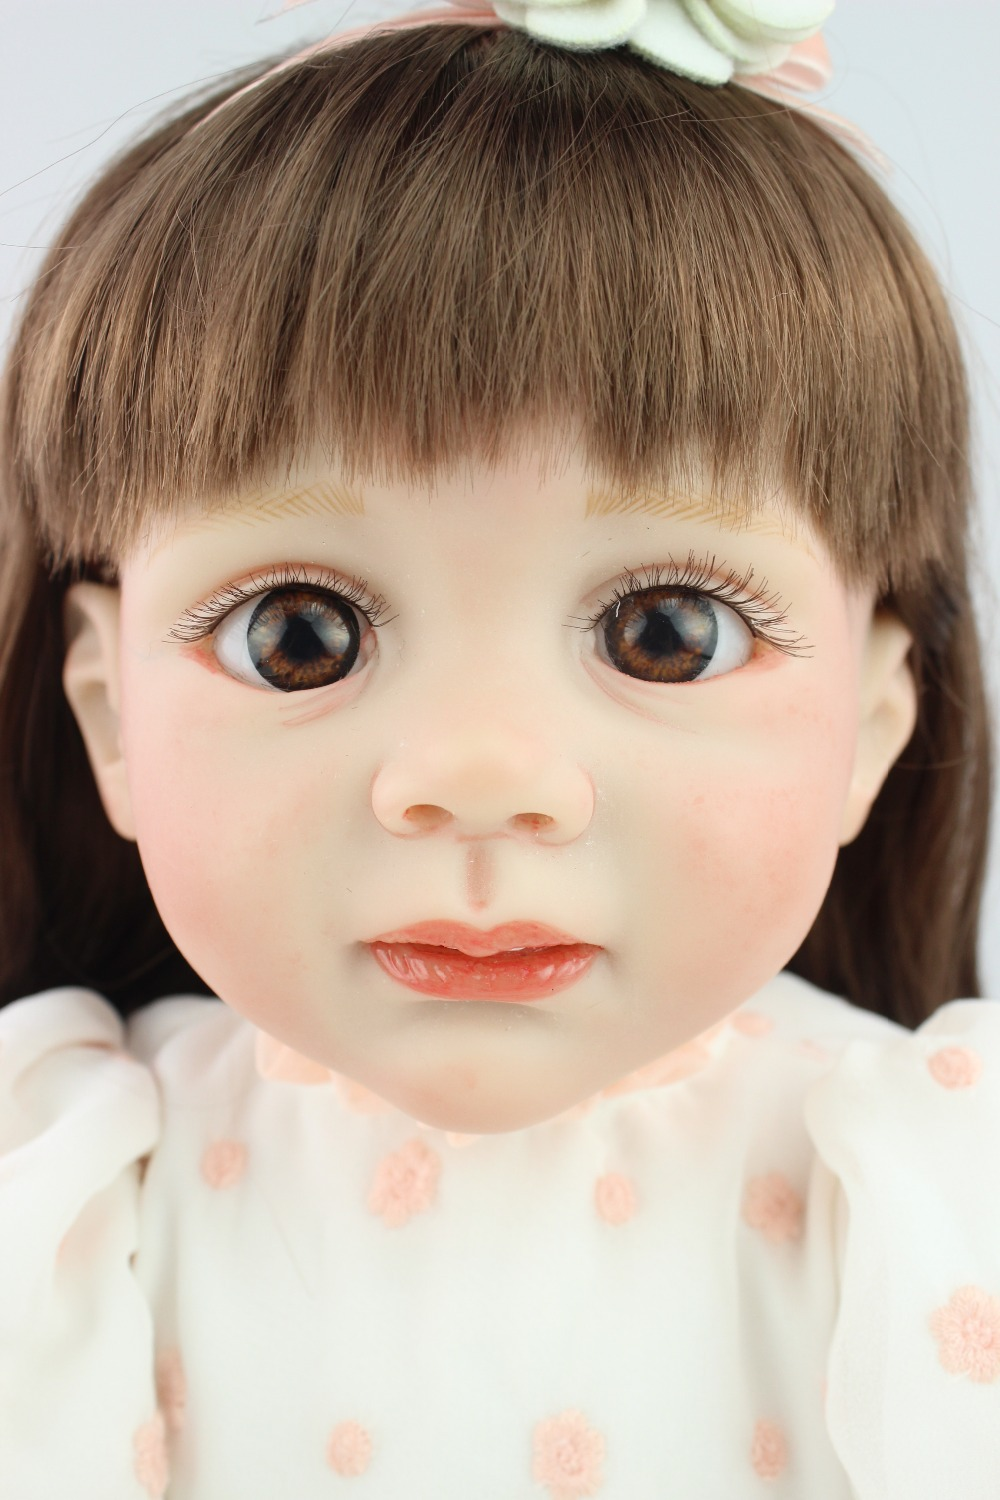 24inch Reborn Toddler baby doll Fridolin lifelike sweet girl real gentle touch educational toys for girl's birthday gifts new arrived 55 60cm silicone reborn baby dolls fridolin sweet girl real gentle touch rooted human hair with pink dress newyear